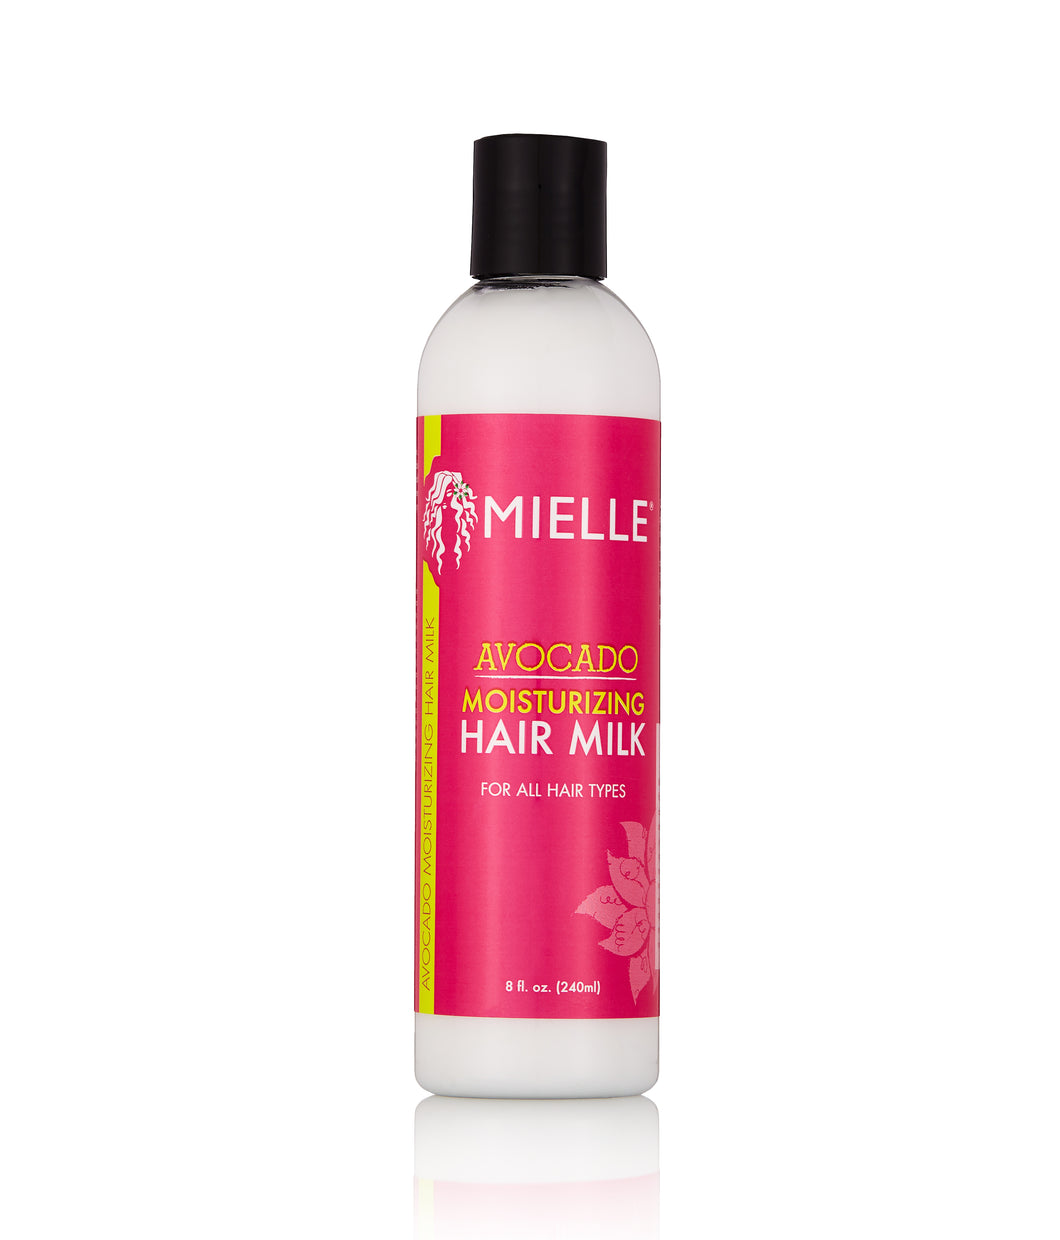 Mielle Organics Avocado Moisturizing Hair Milk 8oz